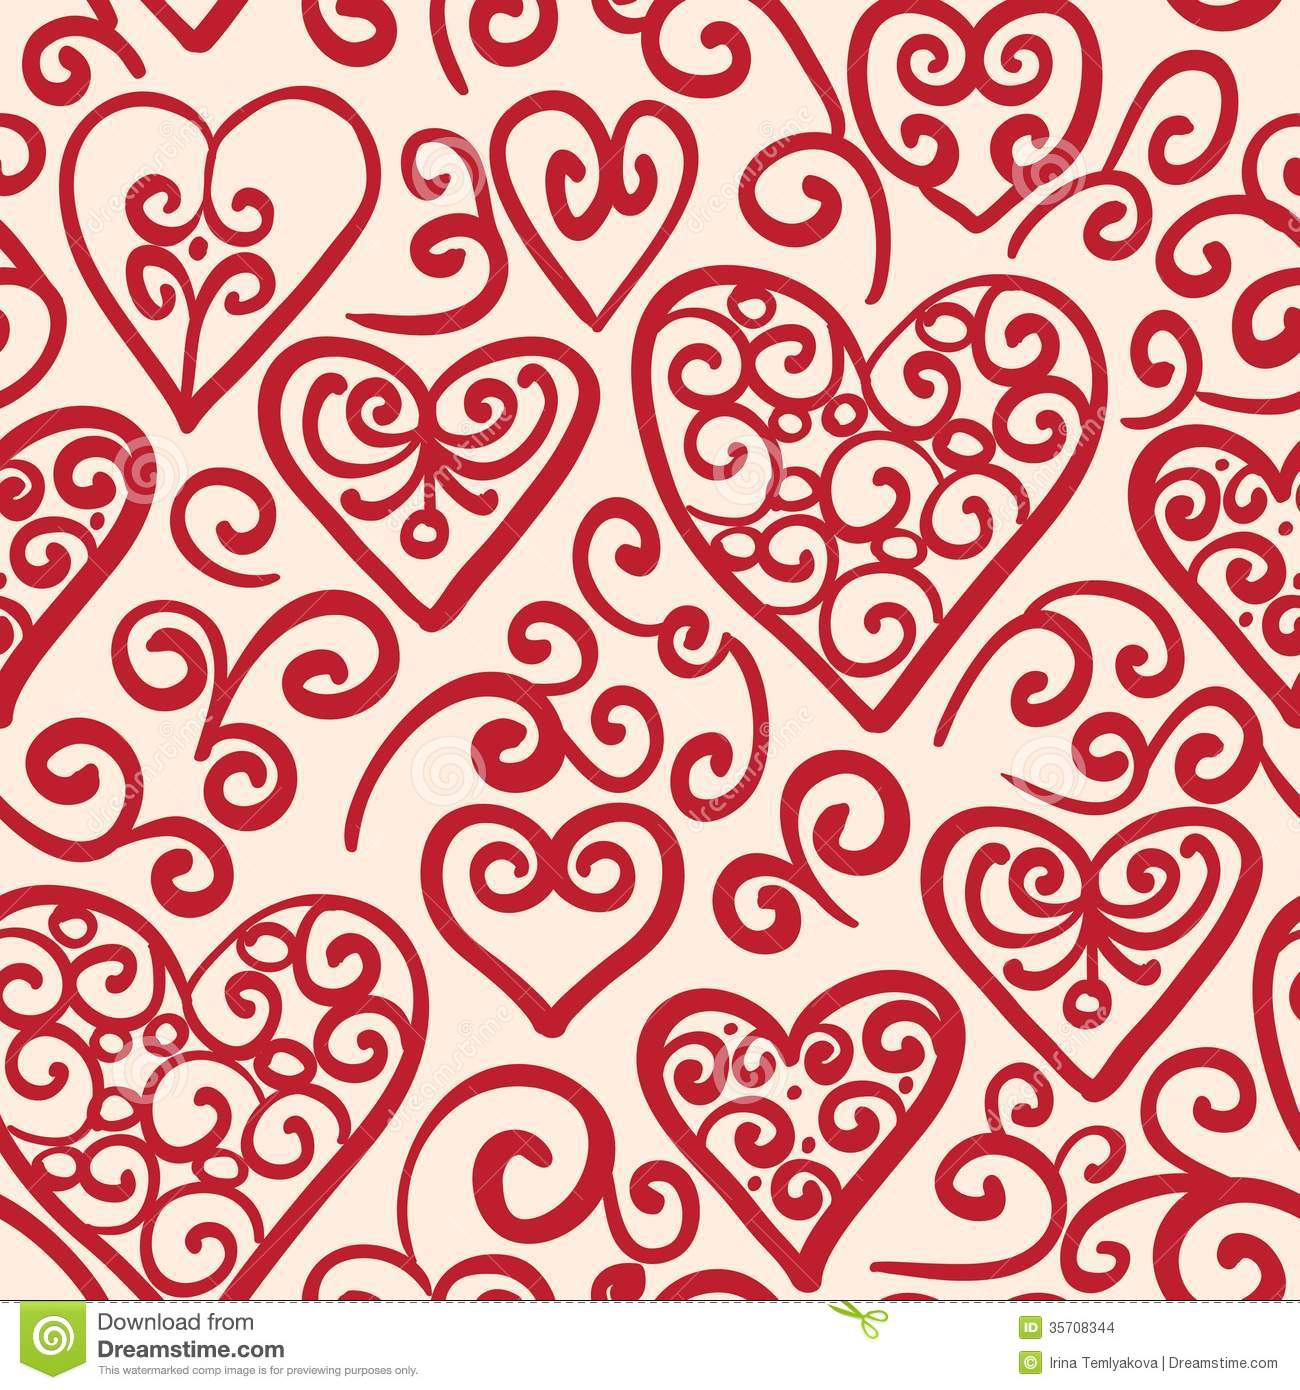 11 cool swirly designs patterns images cool designs for Cool designs